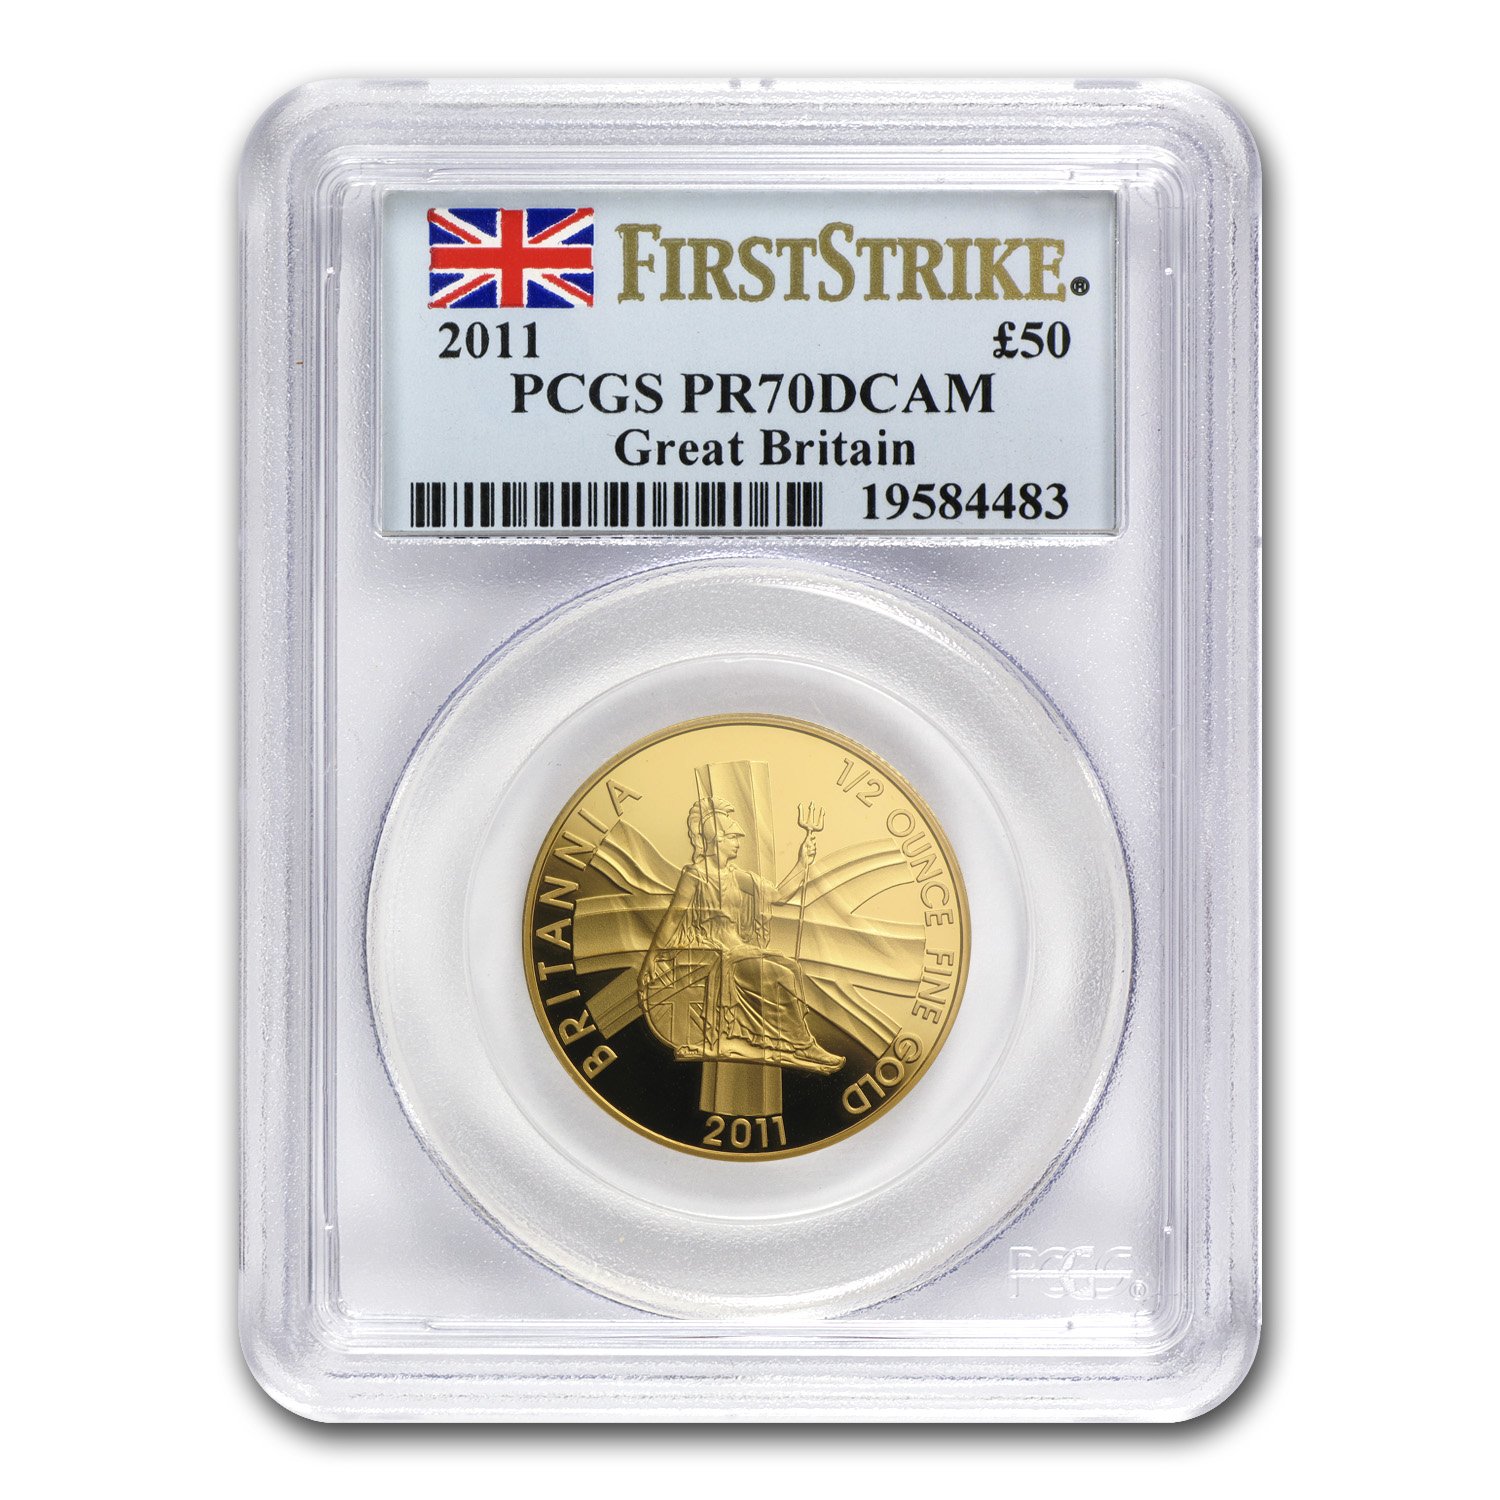 2011 Great Britain 1/2 oz Proof Gold Britannia PR-70 PCGS (FS)